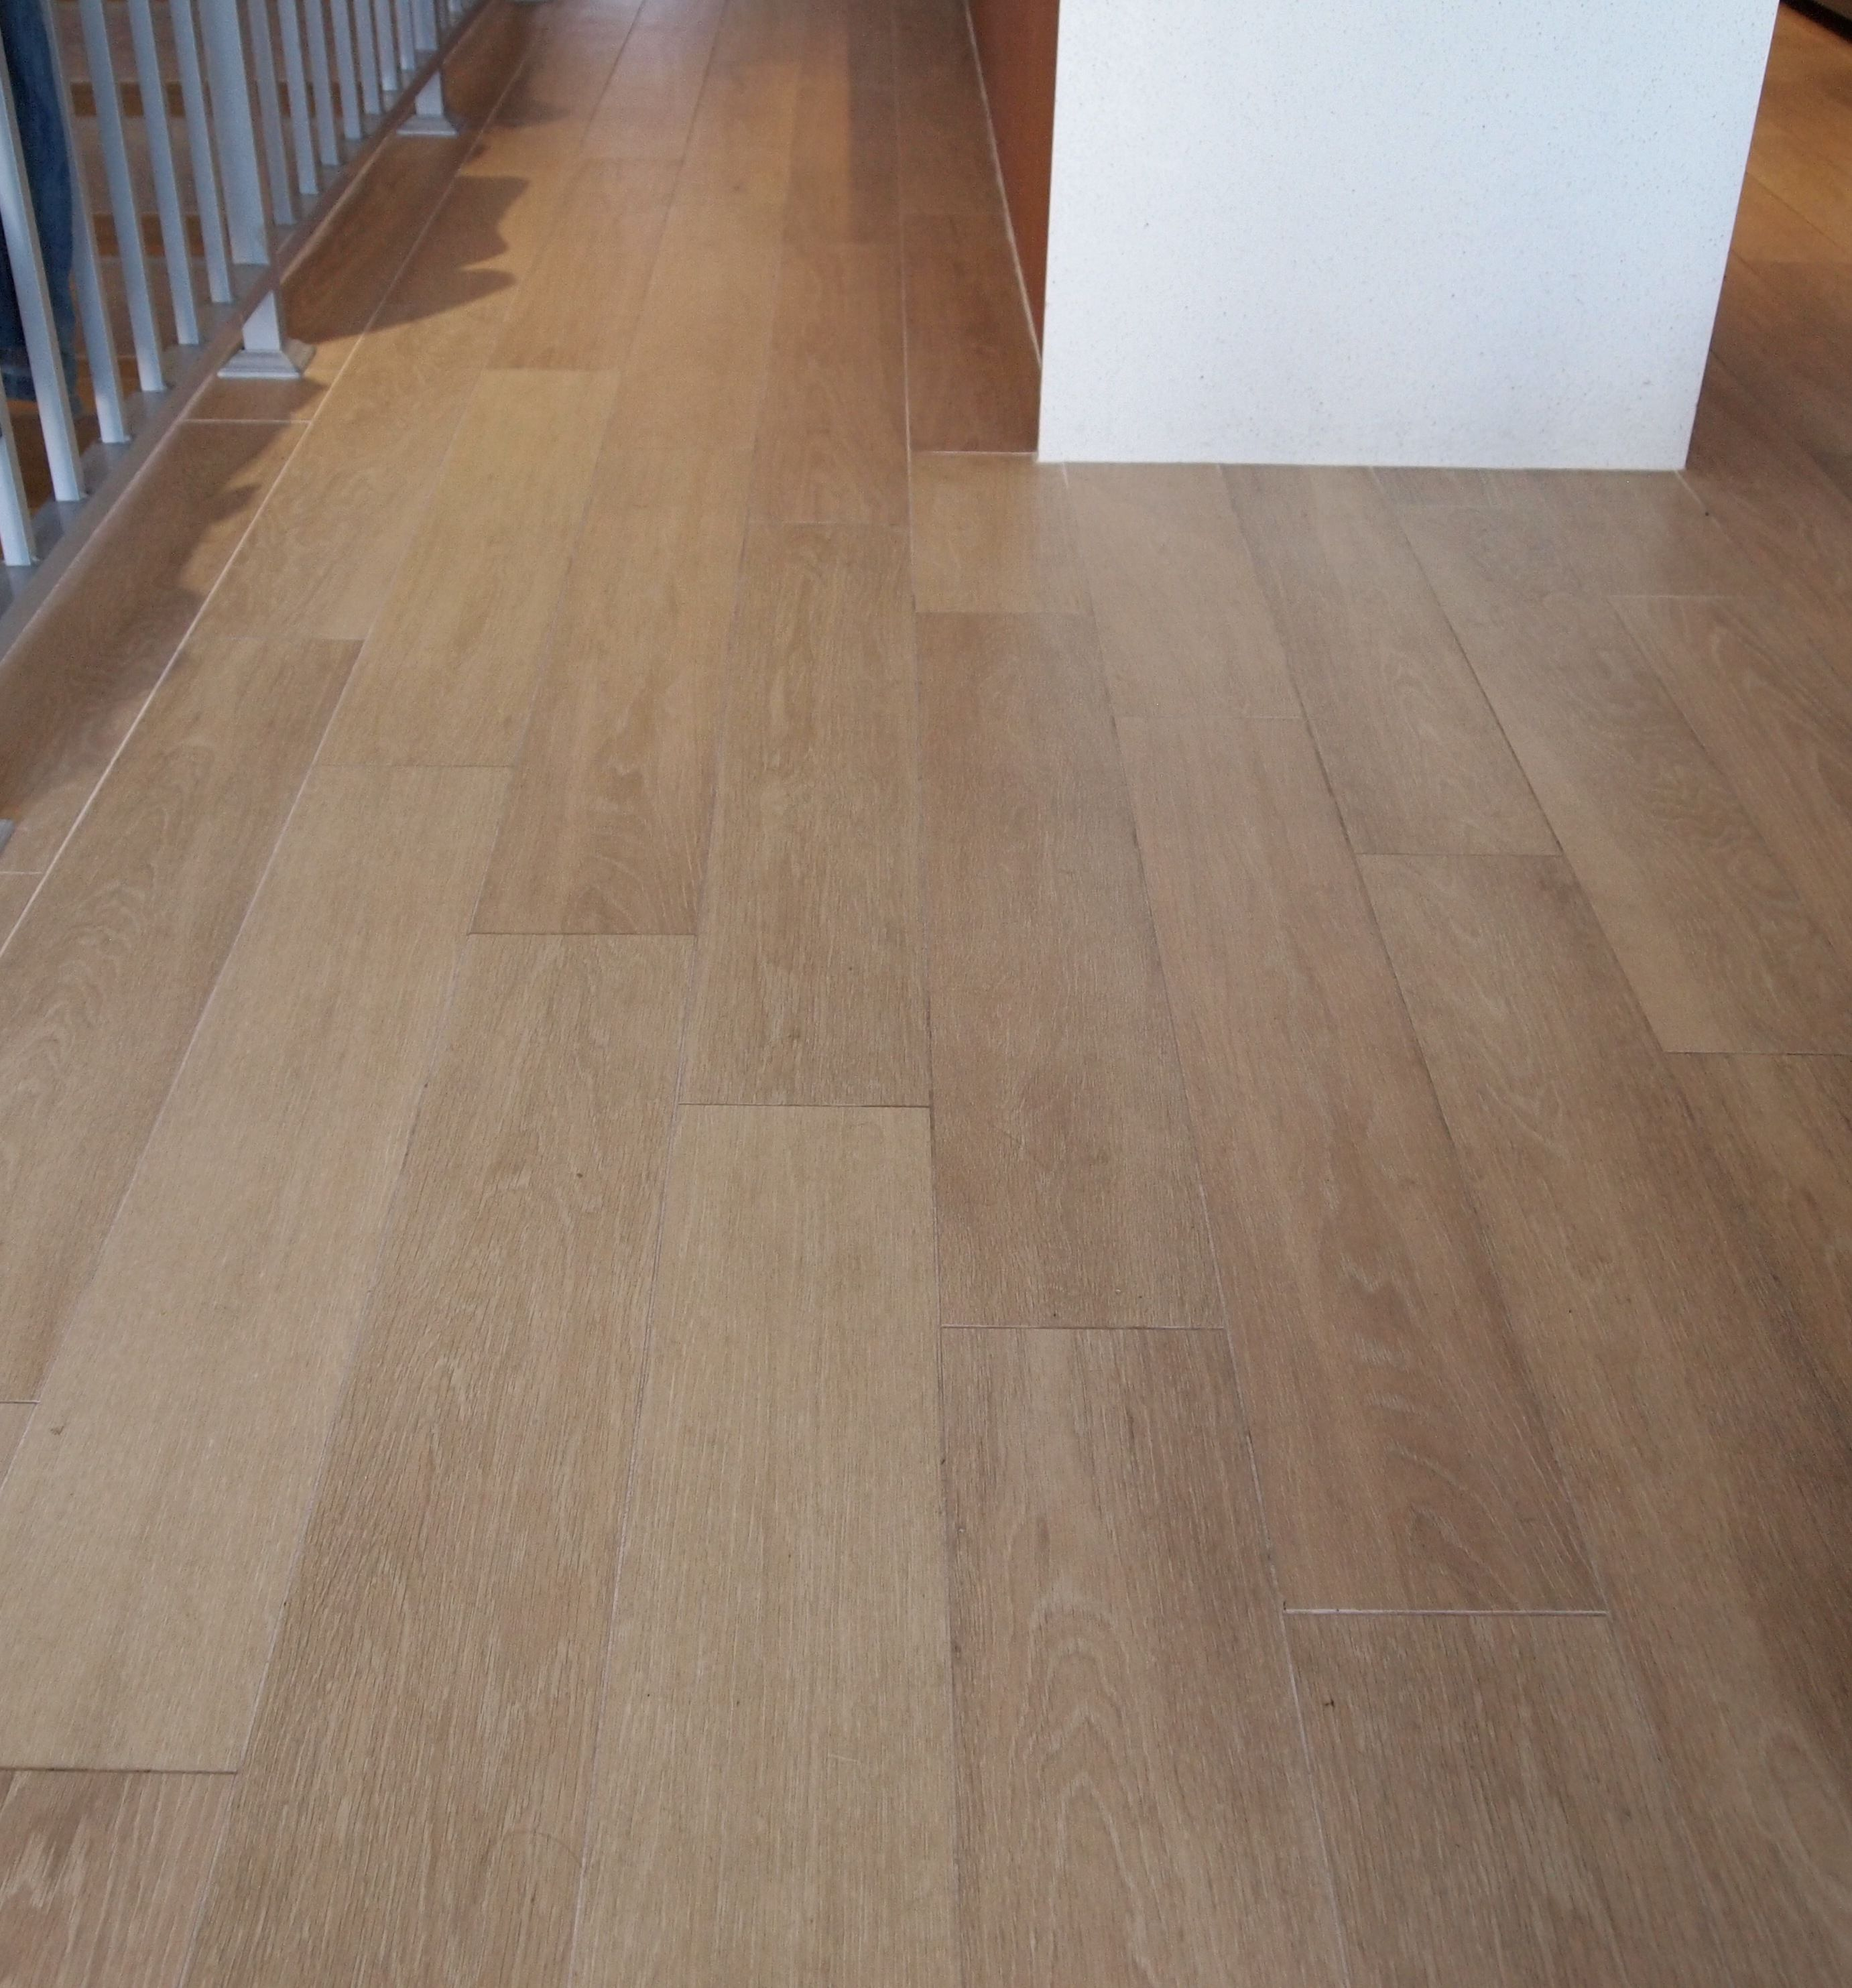 Spanish wood look porcelain floor tiles great for kitchens living spanish wood look porcelain floor tiles great for kitchens living areas bedrooms and dailygadgetfo Choice Image